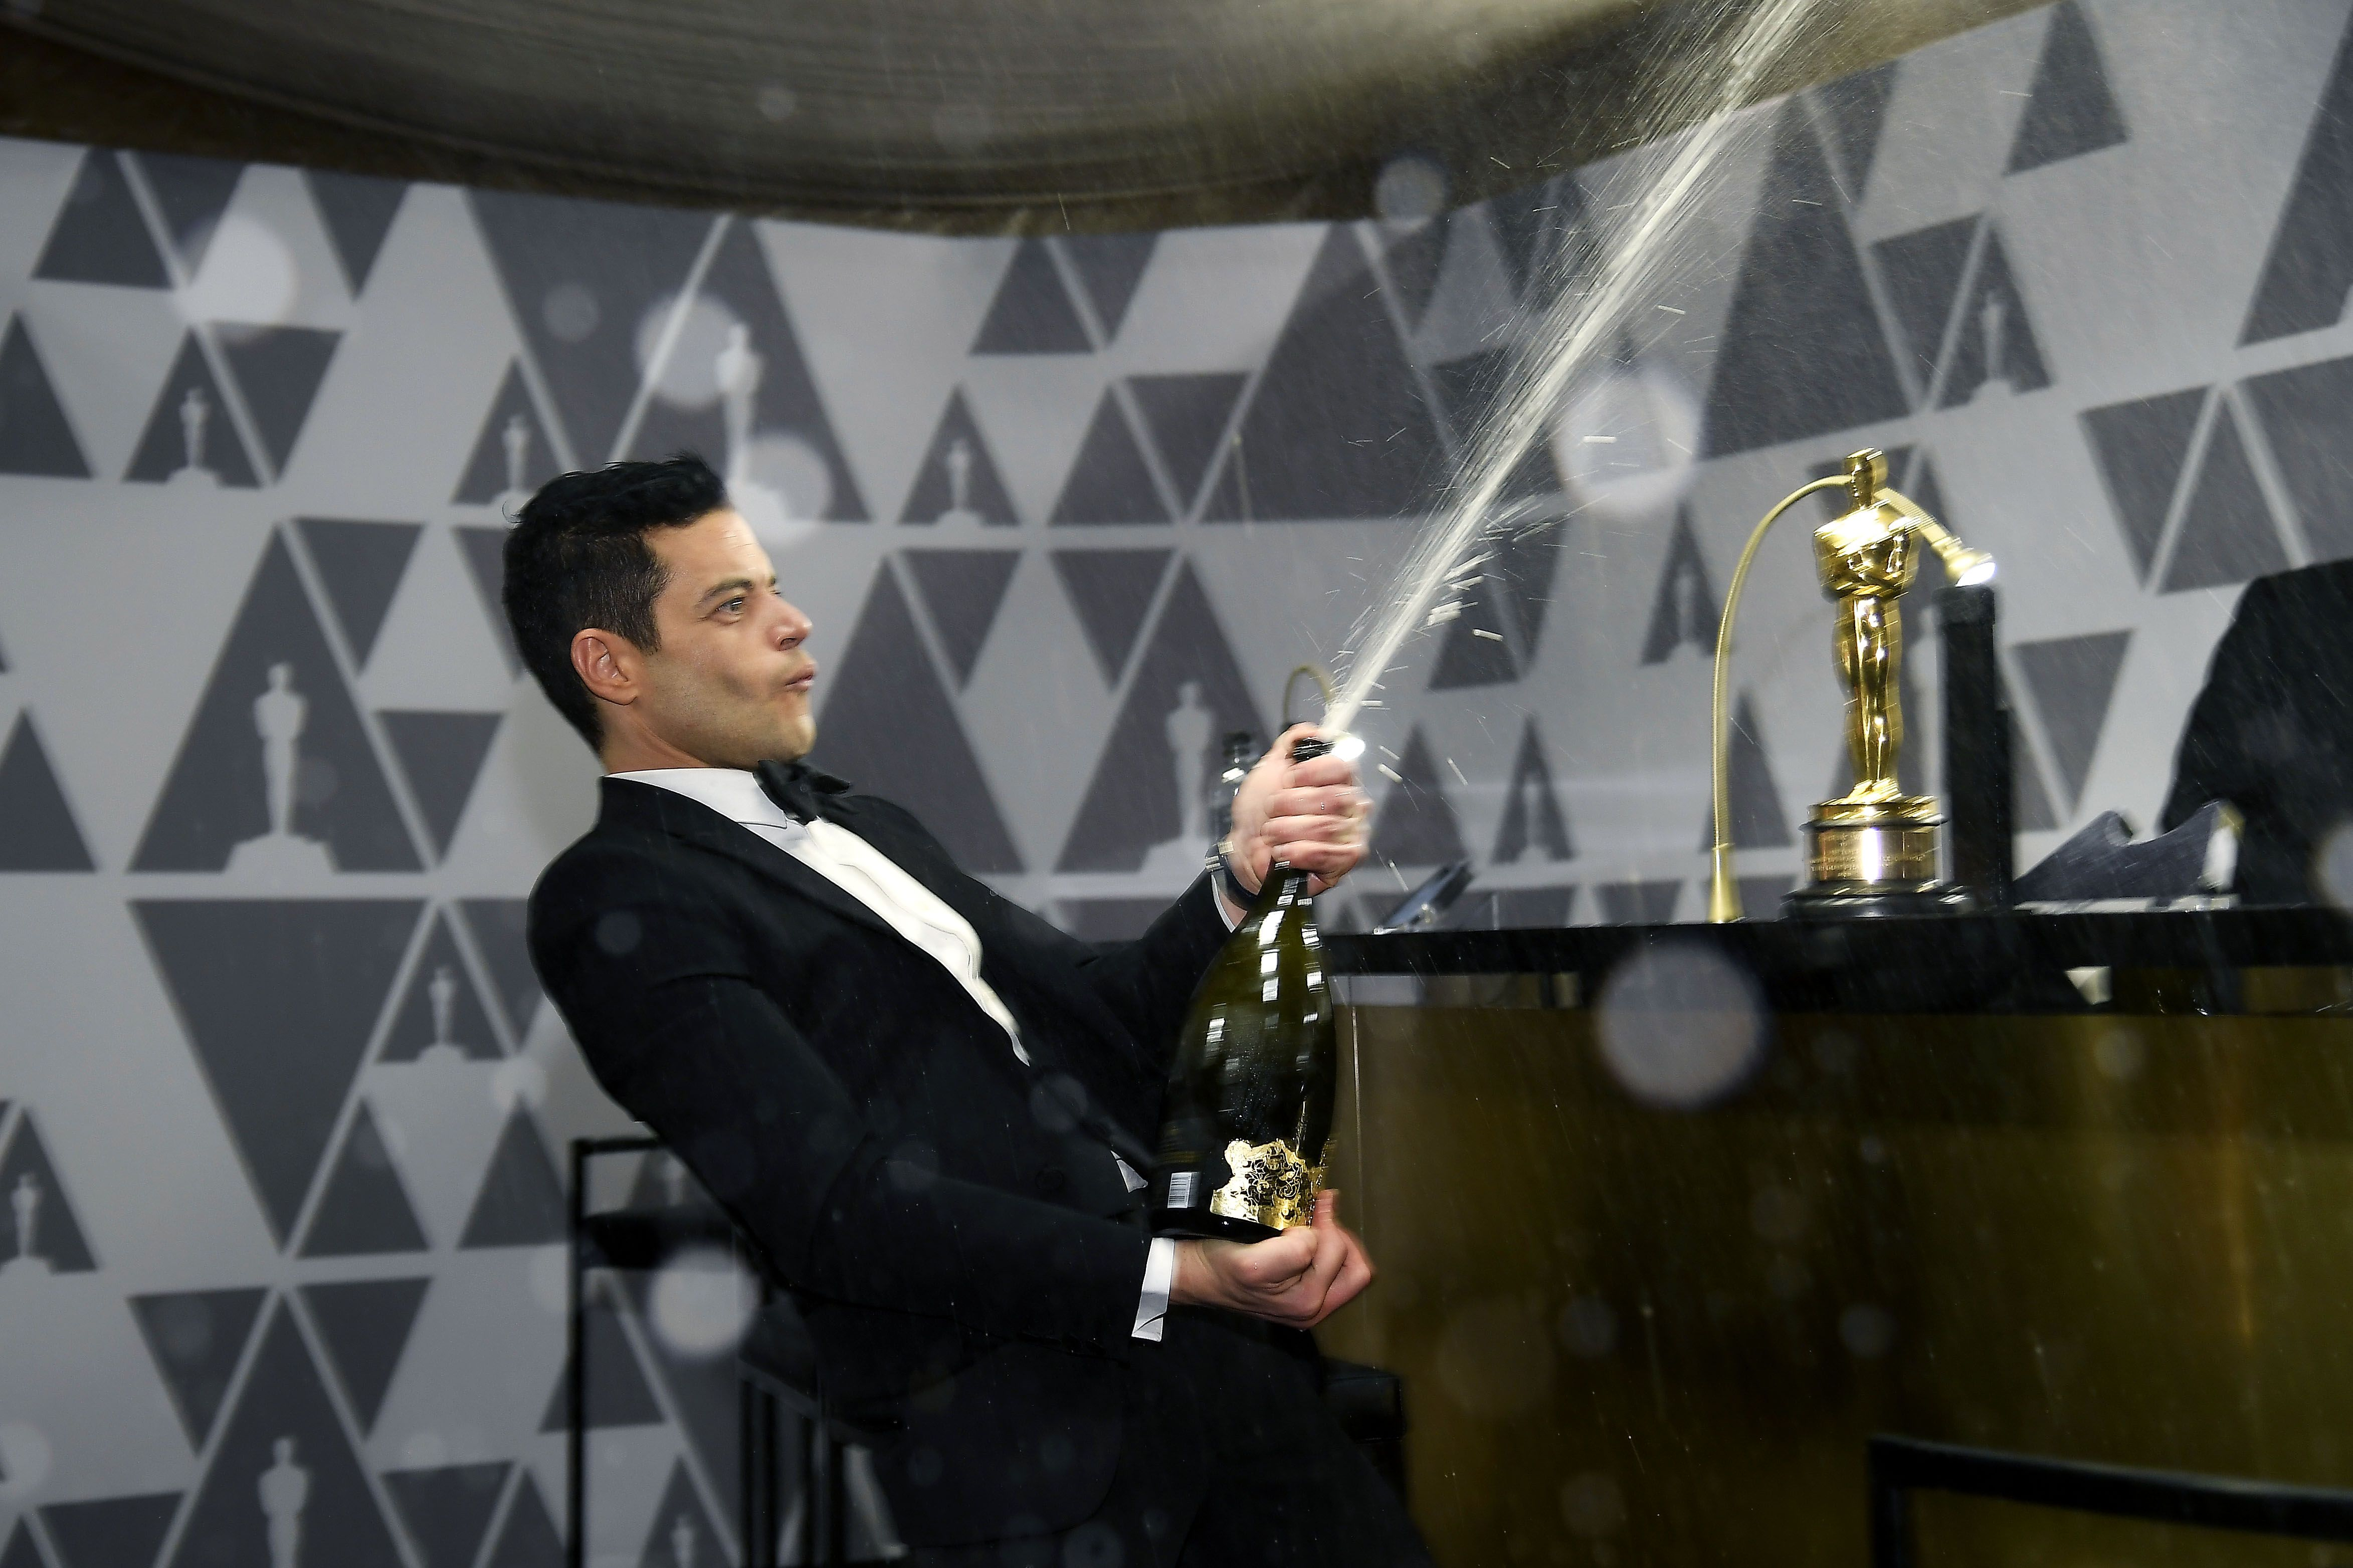 91st Annual Academy Awards - Governors Ball